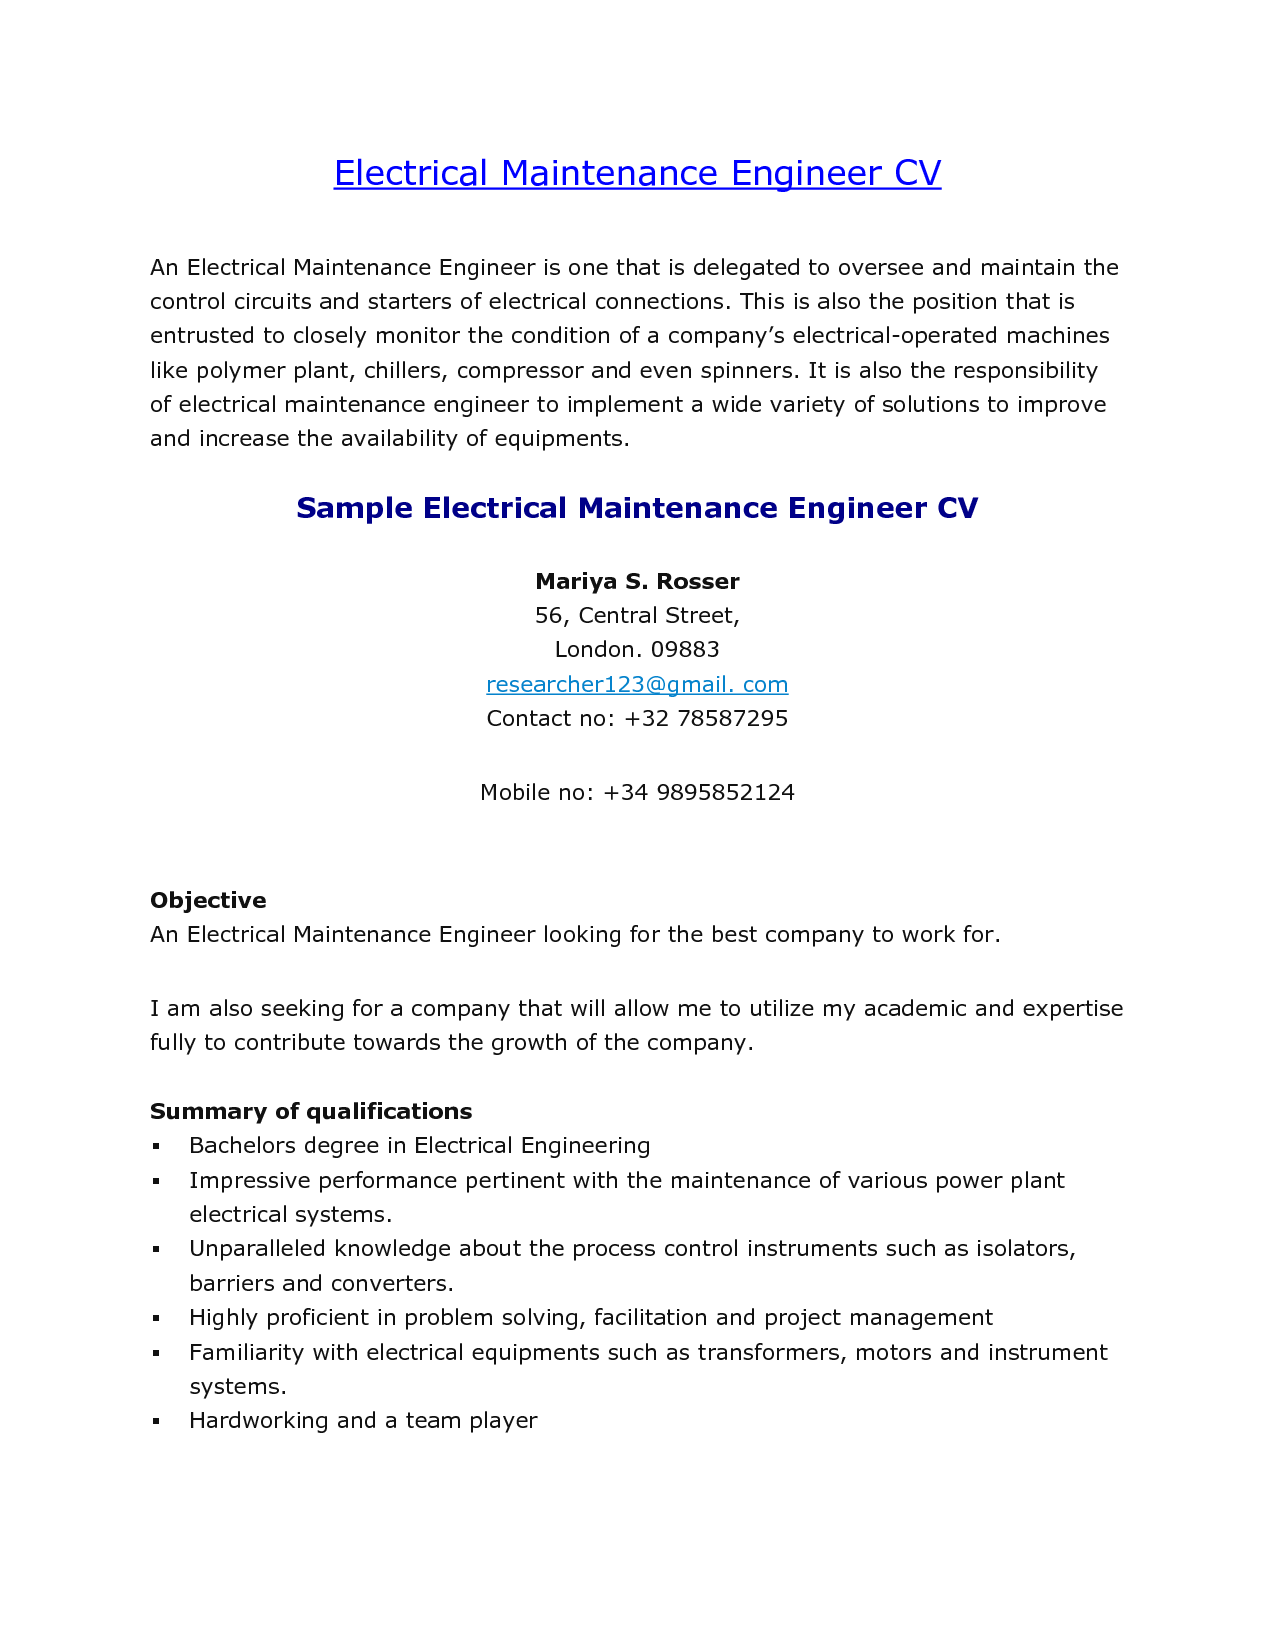 sample resume of electrical maintenance engineer old version old version old version sample resume engineering curriculum - Hotel Maintenance Engineer Sample Resume